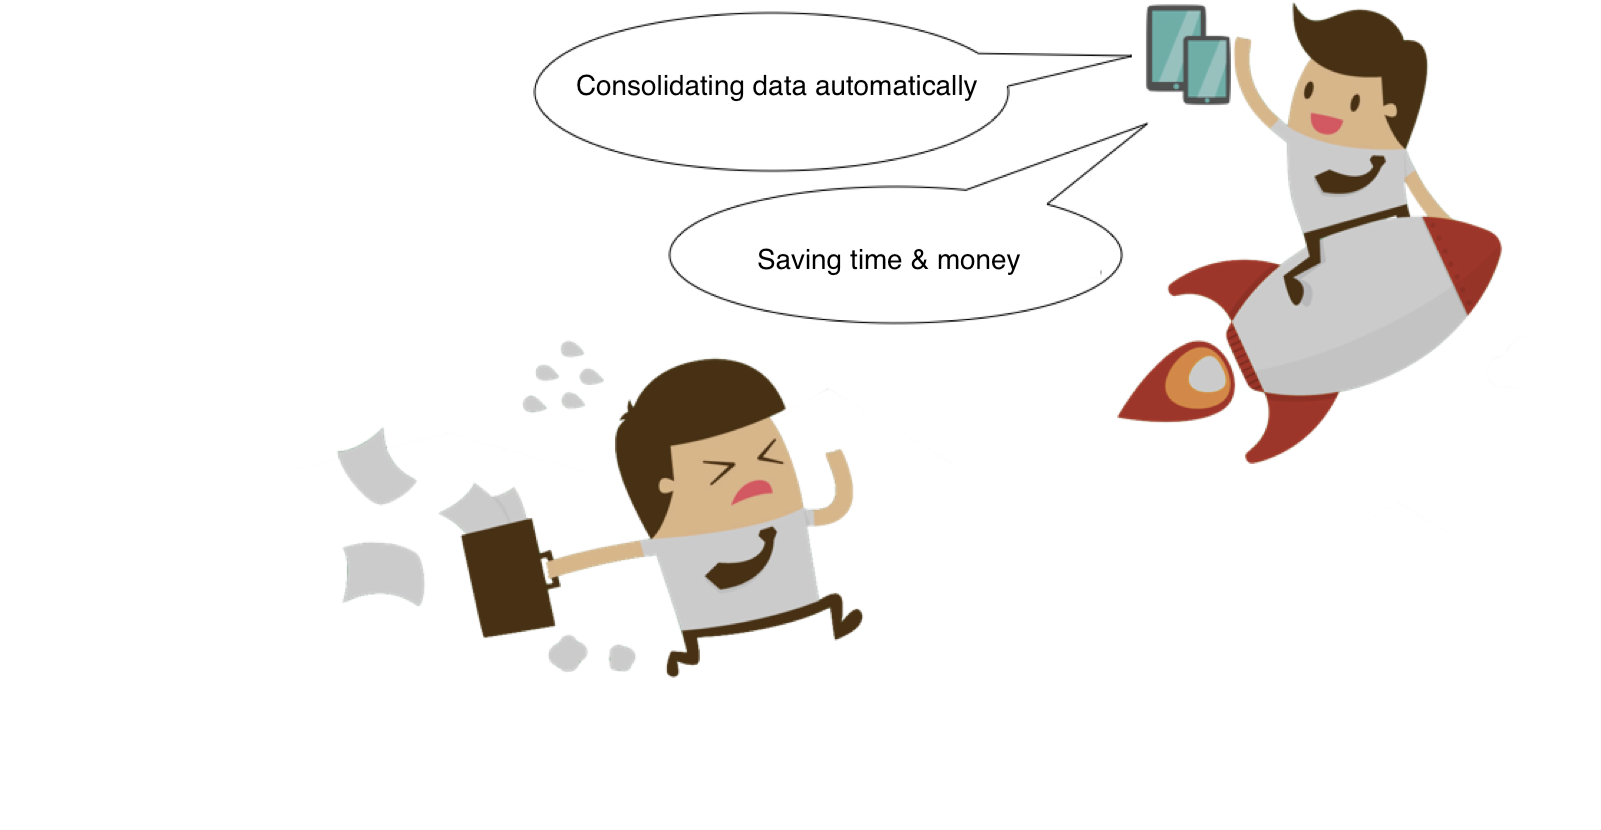 Consolidating data automatically; Saving time & money